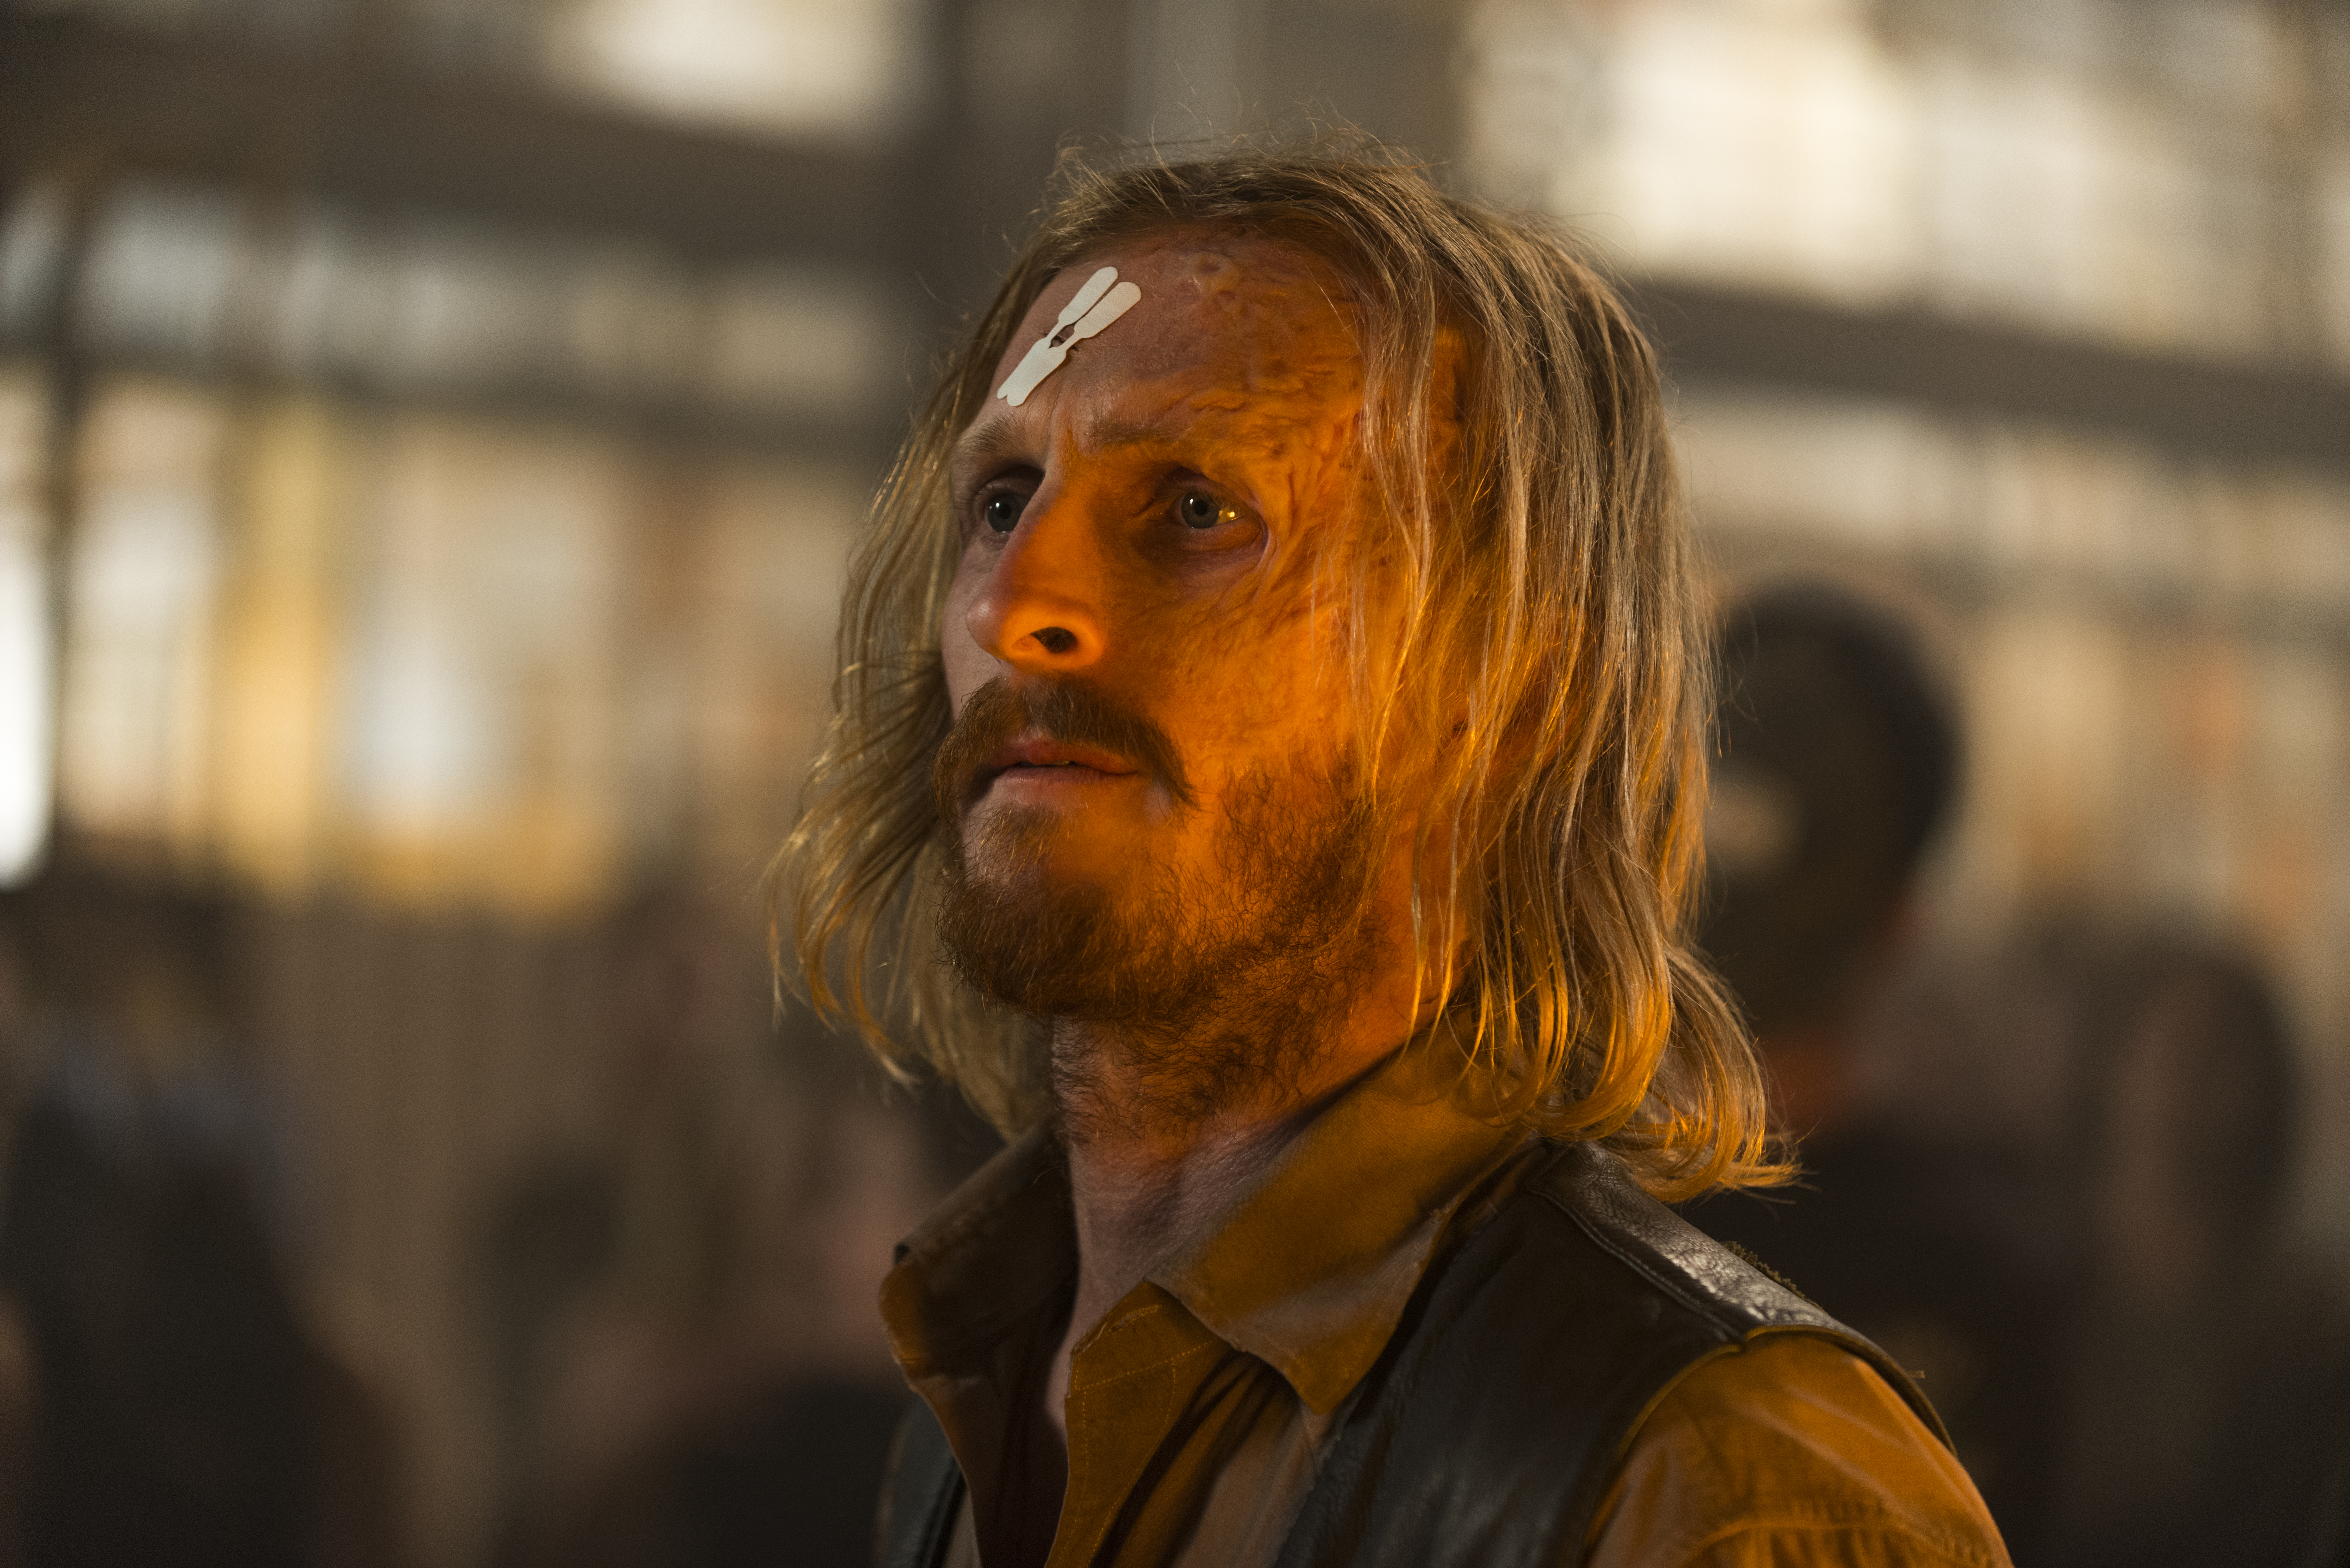 Austin Amelio - Dwight - The Walking Dead Saison 7 Épisode 11 - Photo : Gene Page/AMC